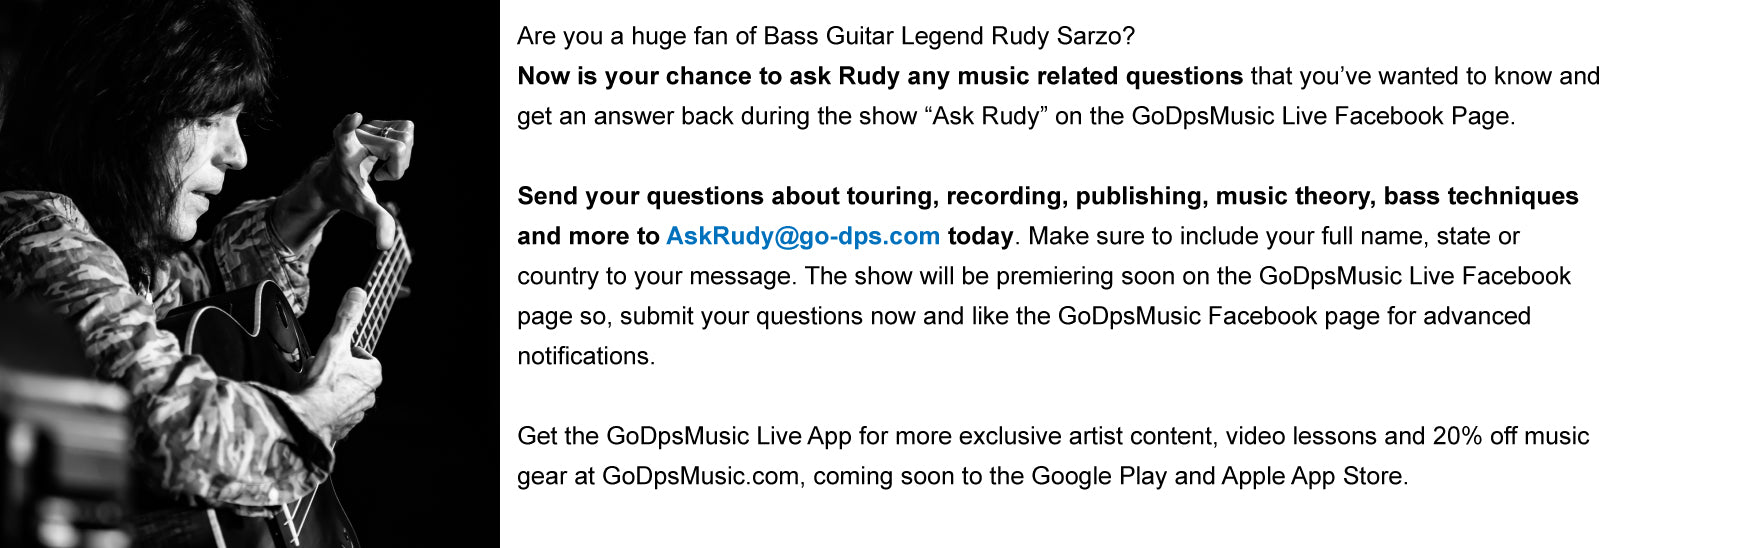 Ask Rudy Sarzo GoDpsMusic Live Show